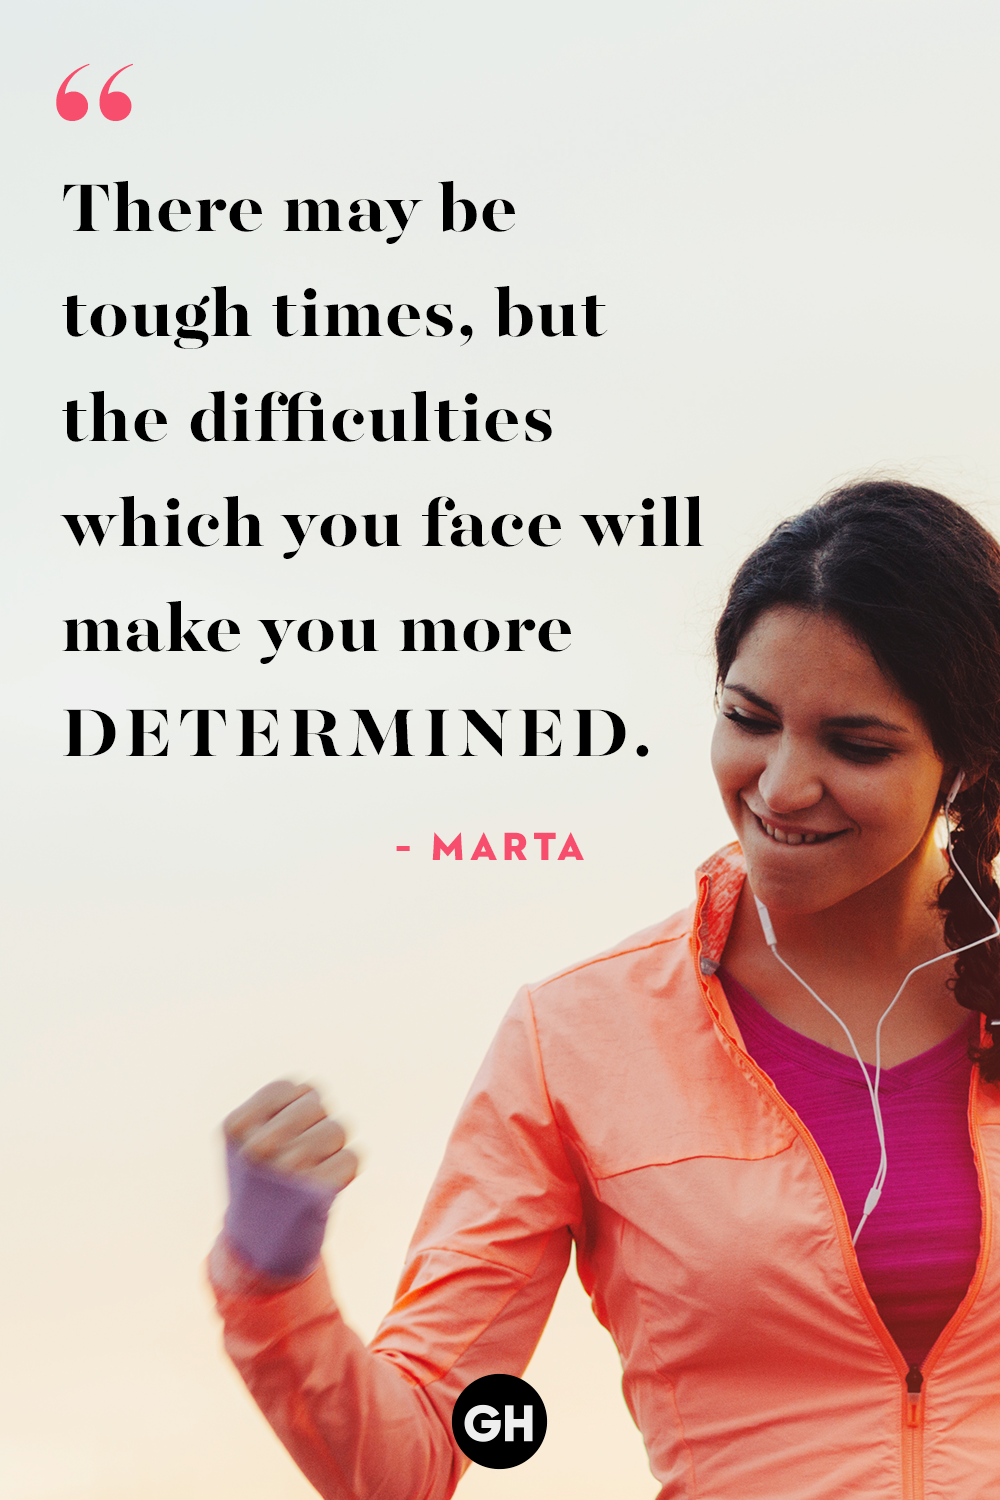 20 Best Diet Quotes - Motivational Quotes for Diet & Fitness